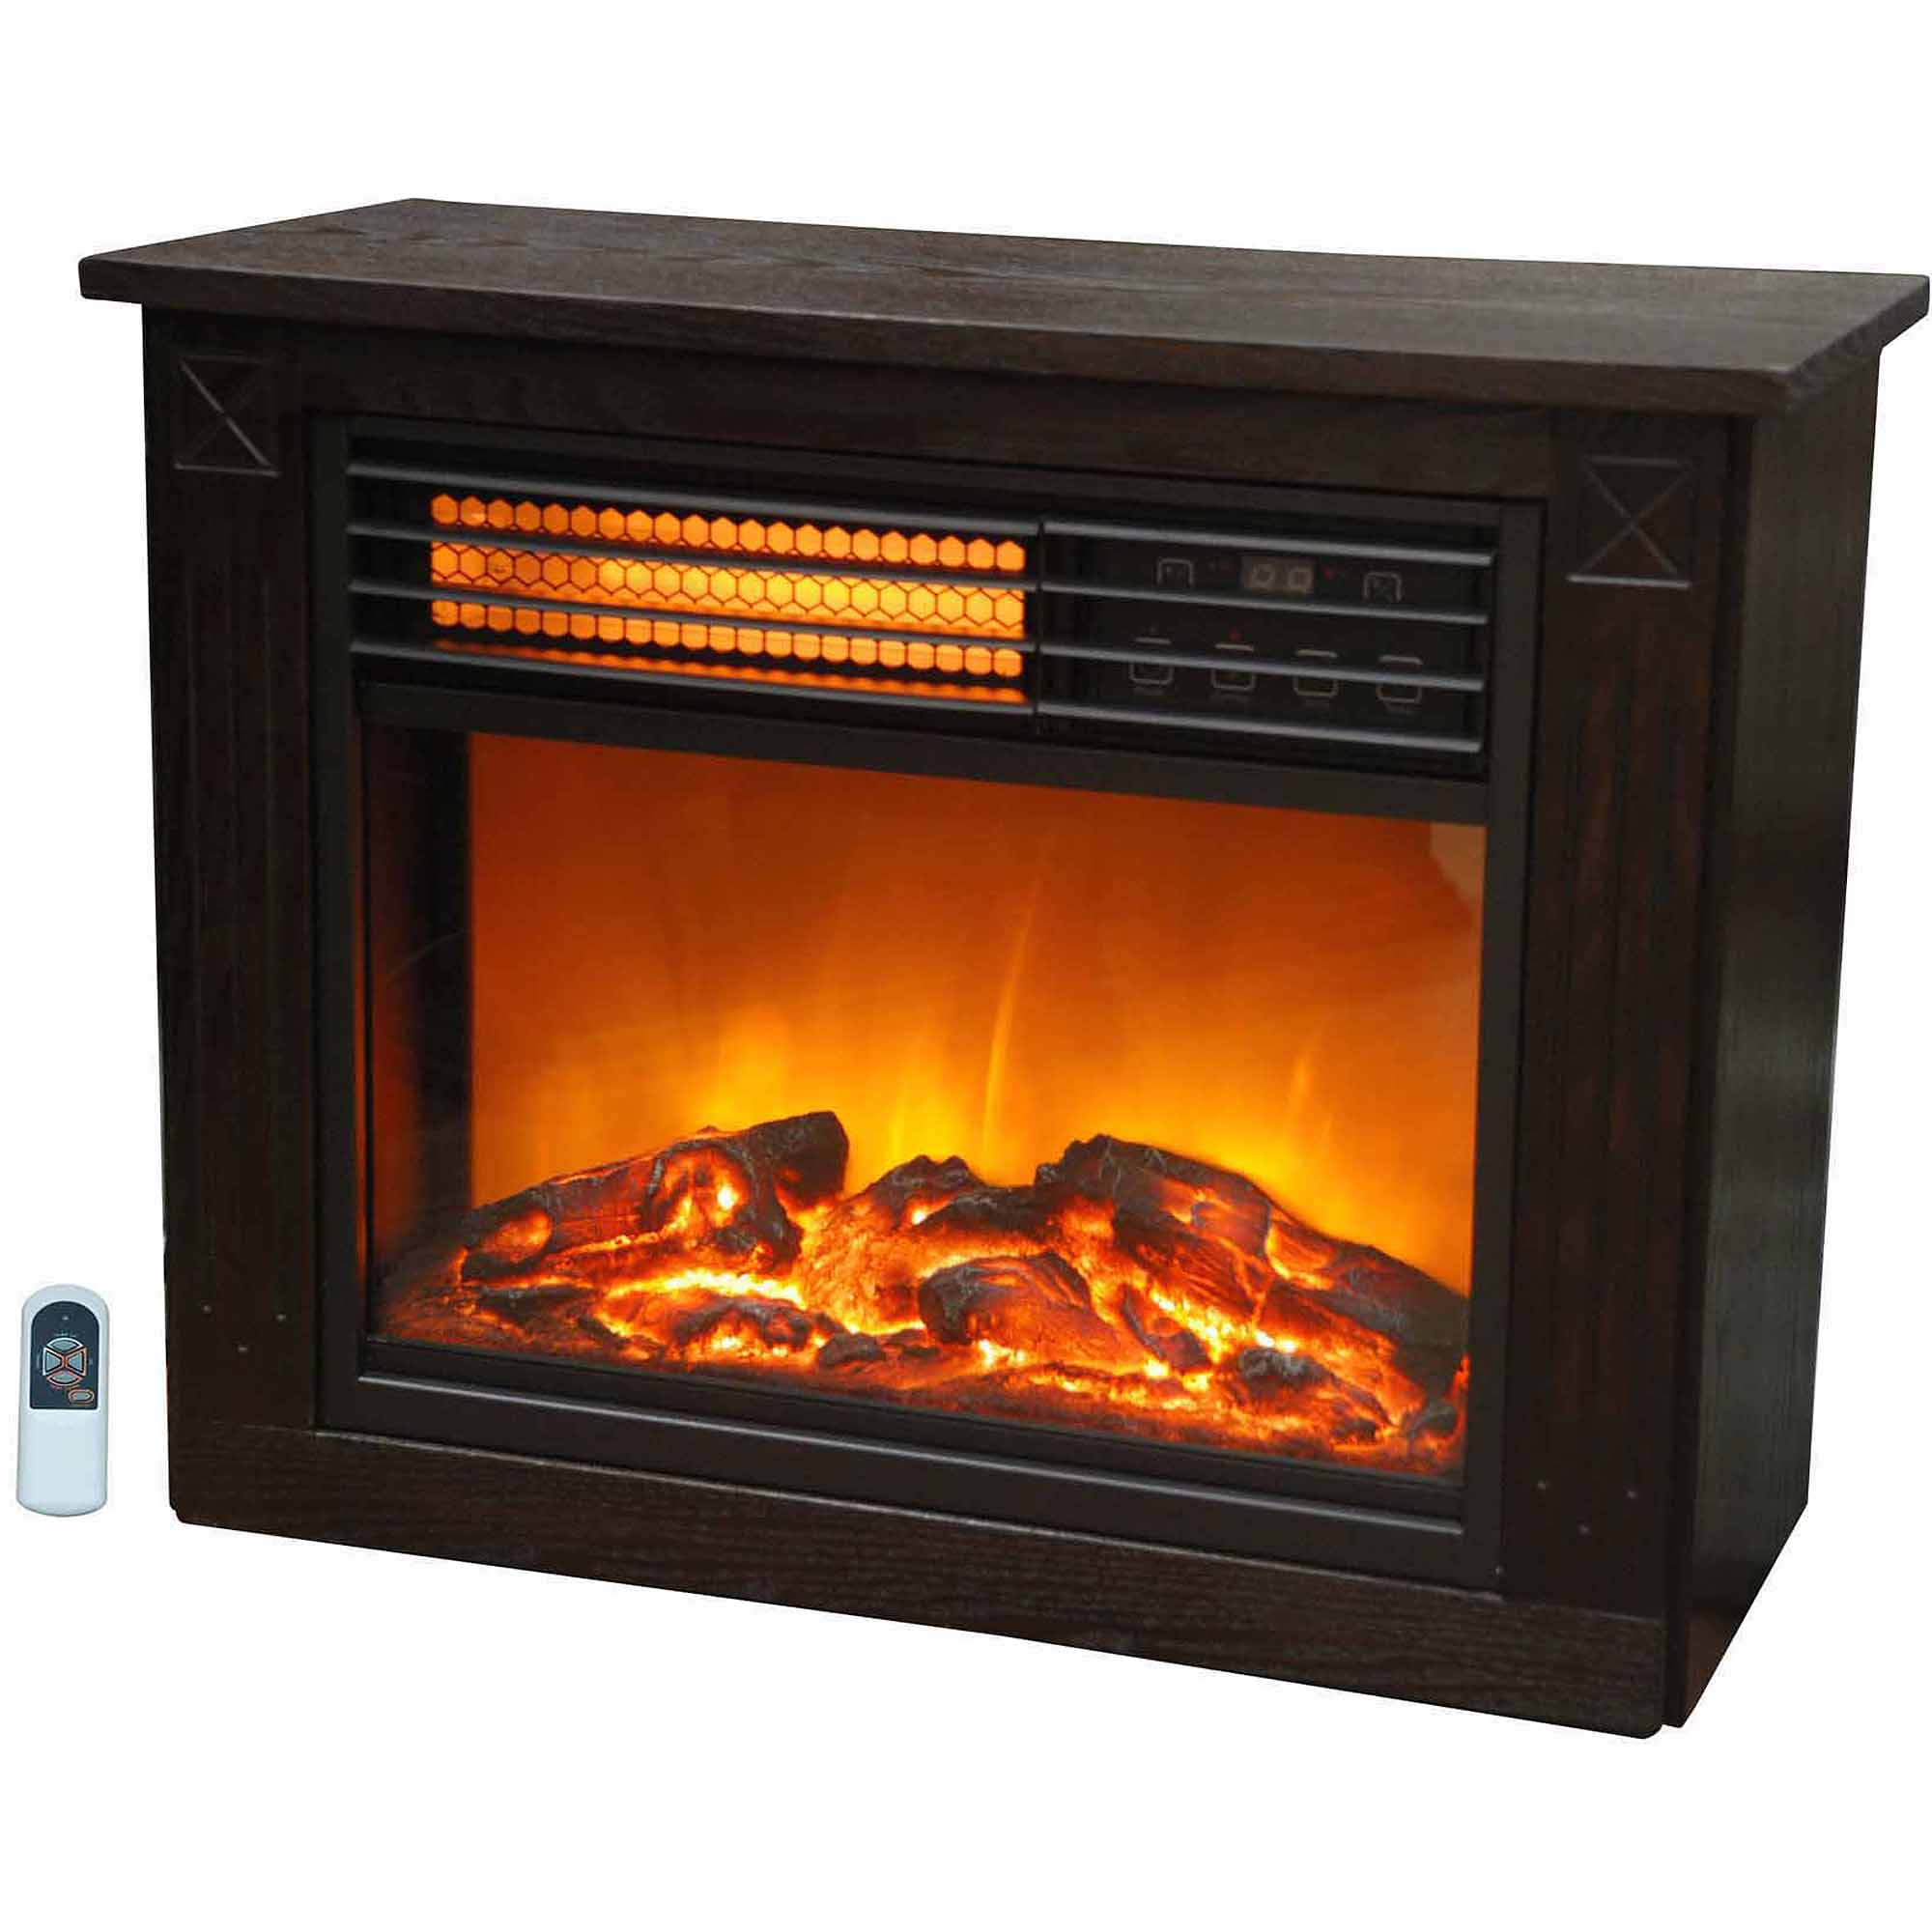 choice fireplace digital itm wall standing glass w free heat details products electric heater with large mount xl about best adjustable